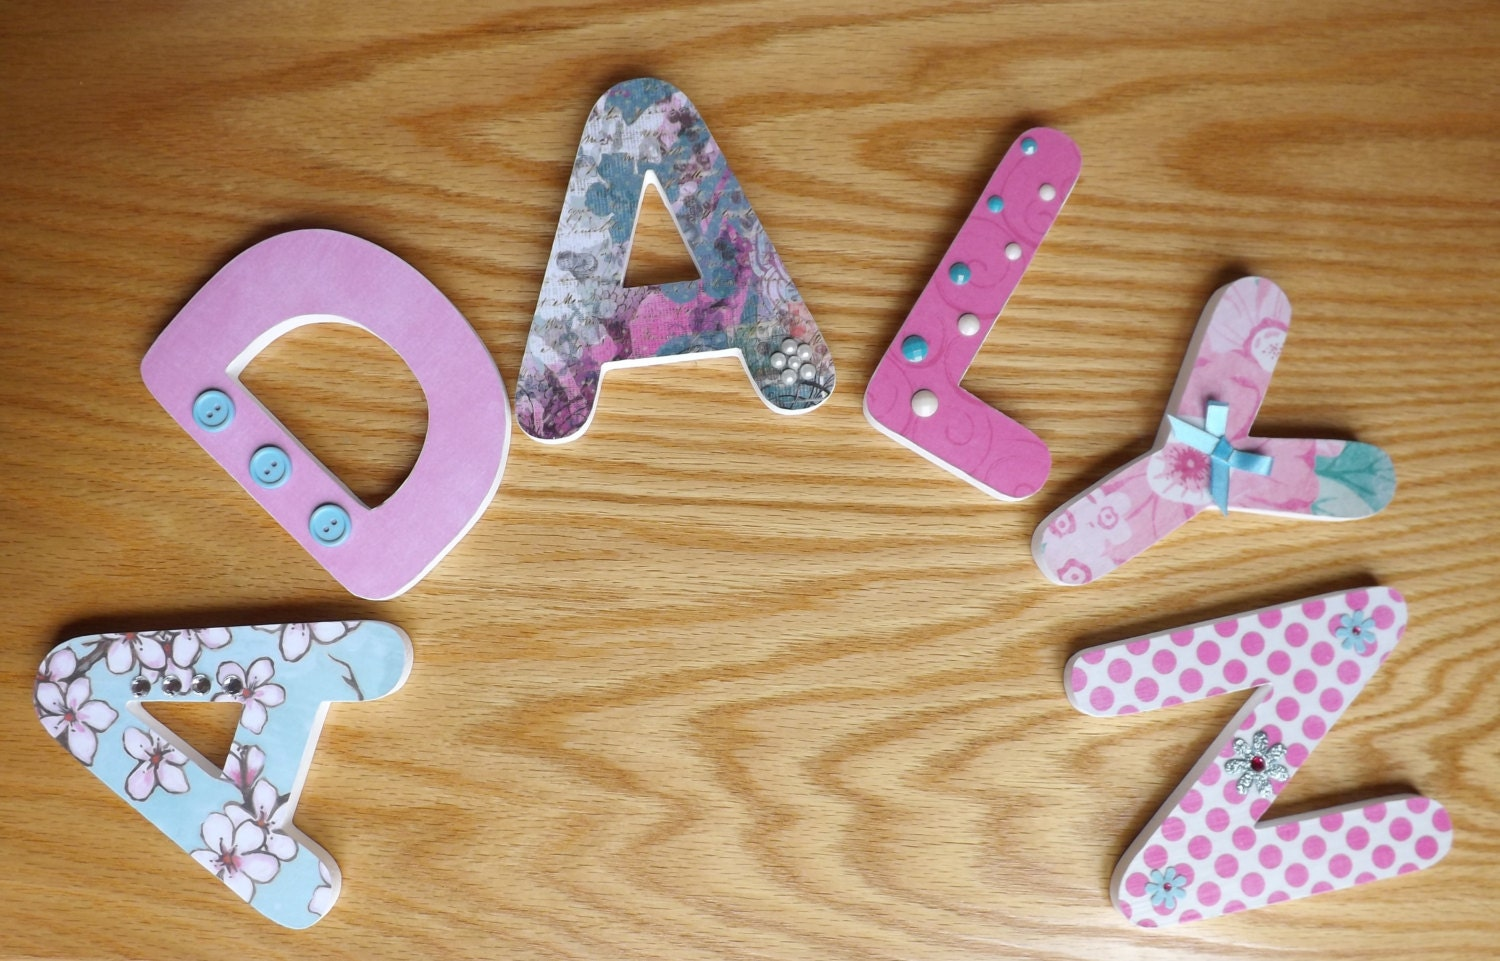 5 inch wooden letters 5 1 4 inch decorative wooden nursery wall letters custom 20222 | il fullxfull.587715215 9wye